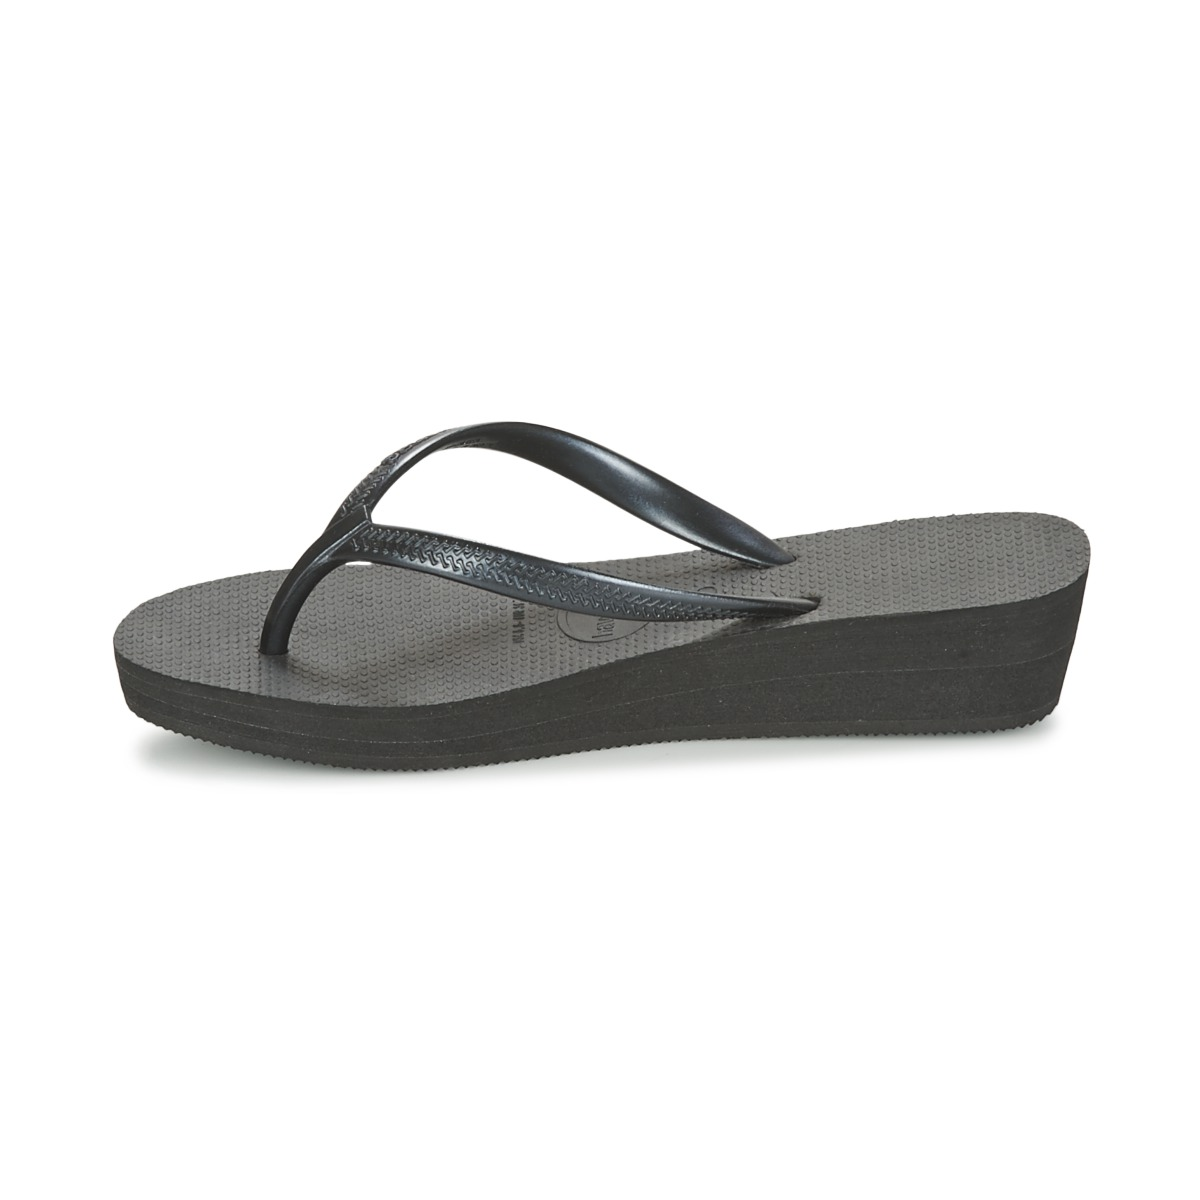 3aa75318ced758 Image is loading Havaianas-Womens-High-Light-Wedge-Thong-FlipFlops-Black-